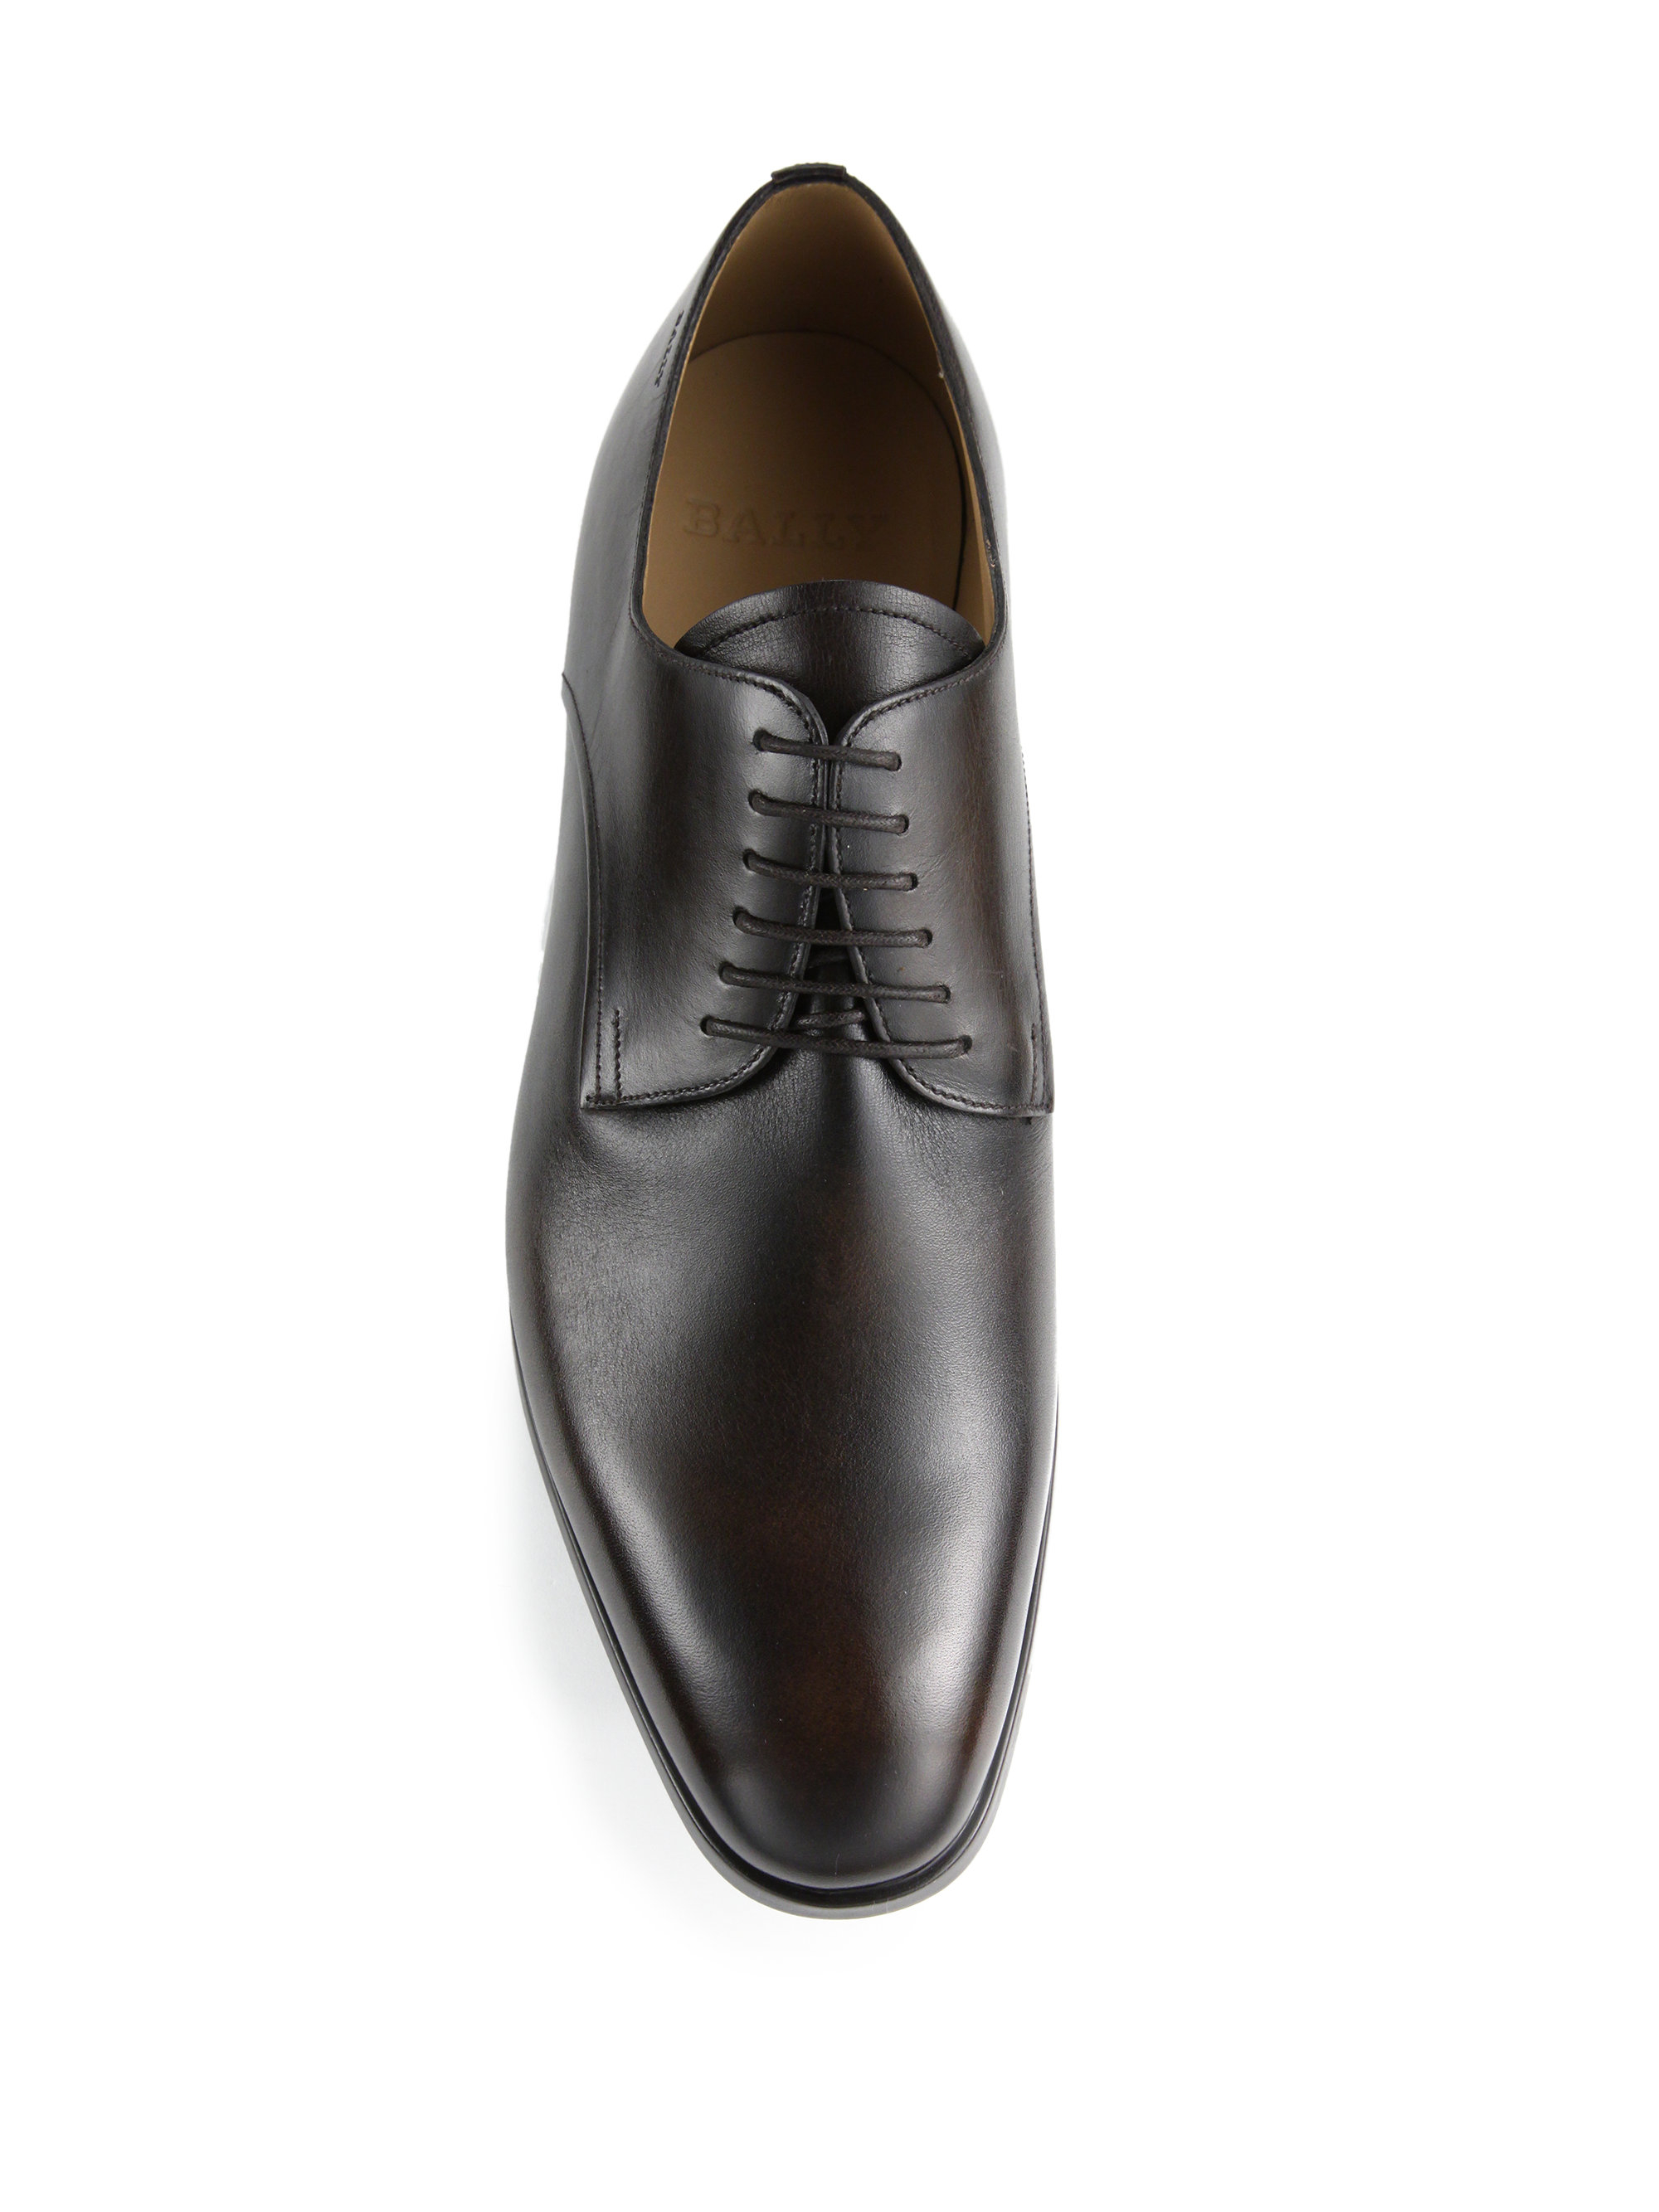 outlet for nice wholesale price sale online Bally Derby shoes low shipping online ebay cheap price clearance with credit card bgcAz